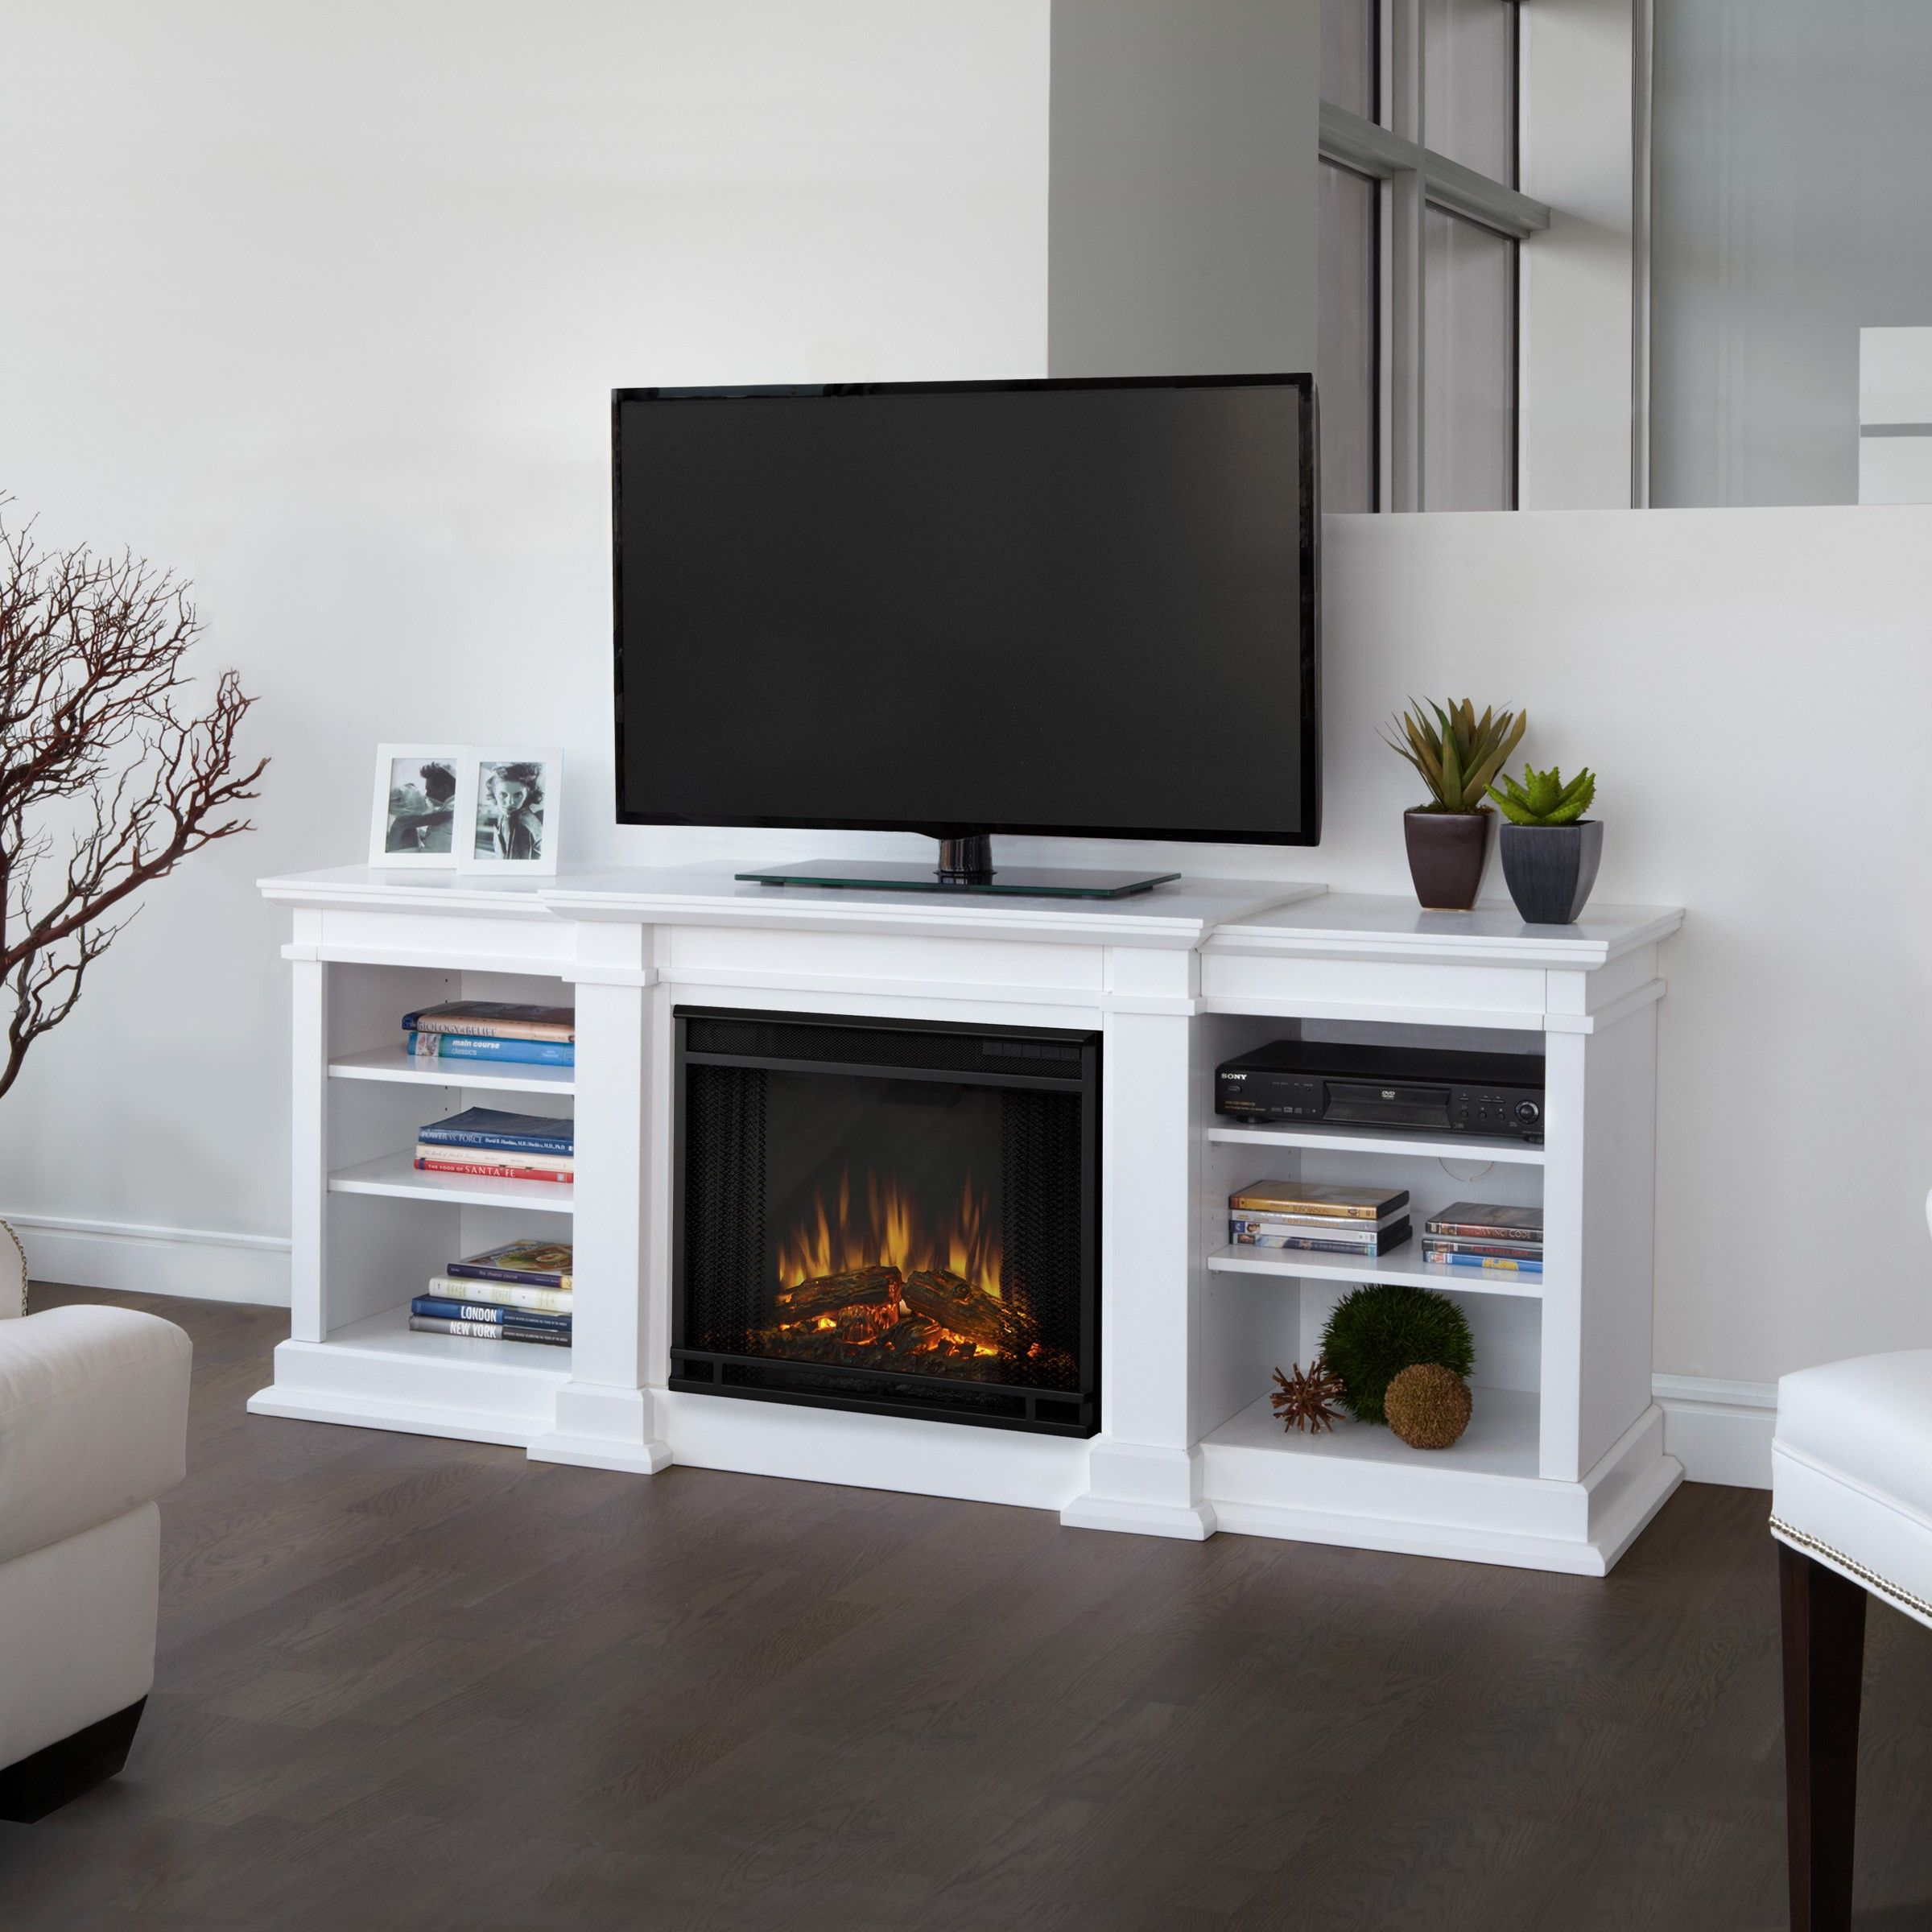 Gel fireplace insert ideas - Media Console Gel Fuel Fireplace In White Features Solid Wood And Veneered Mdf Construction It Includes Wooden Mantel Firebox Hand Painted Cast Concrete